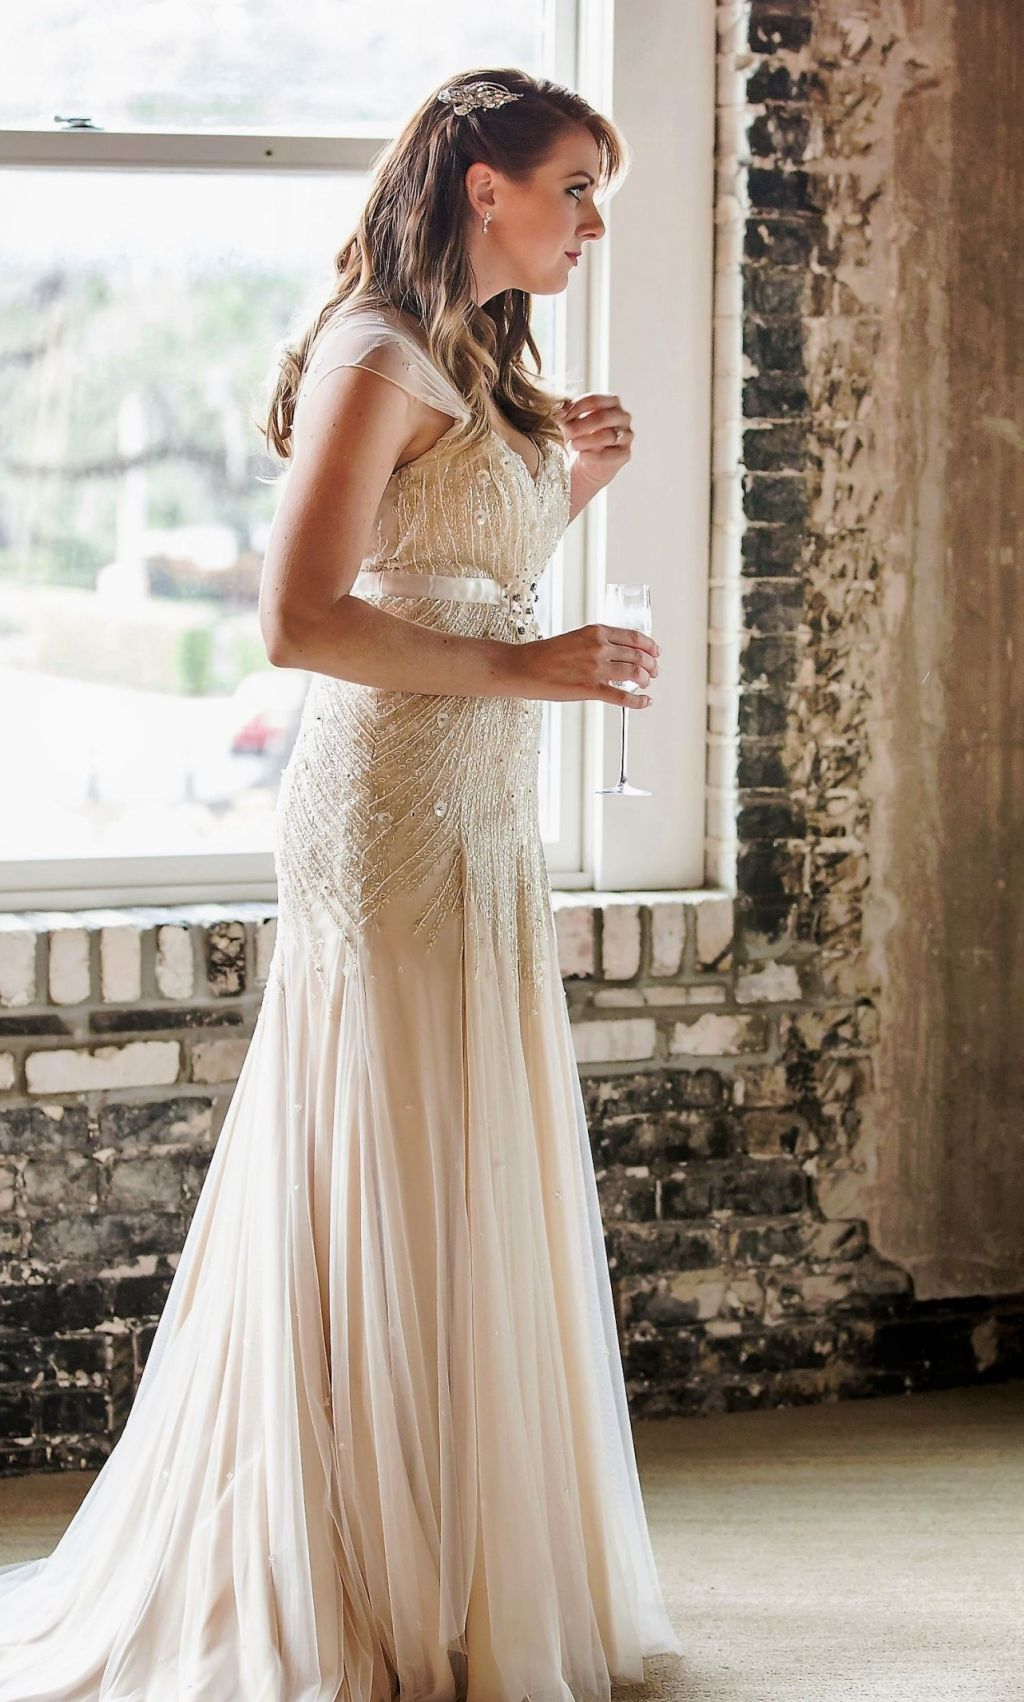 Contemporary Jenny Packham Evening Gown Photo - Top Wedding Gowns ...